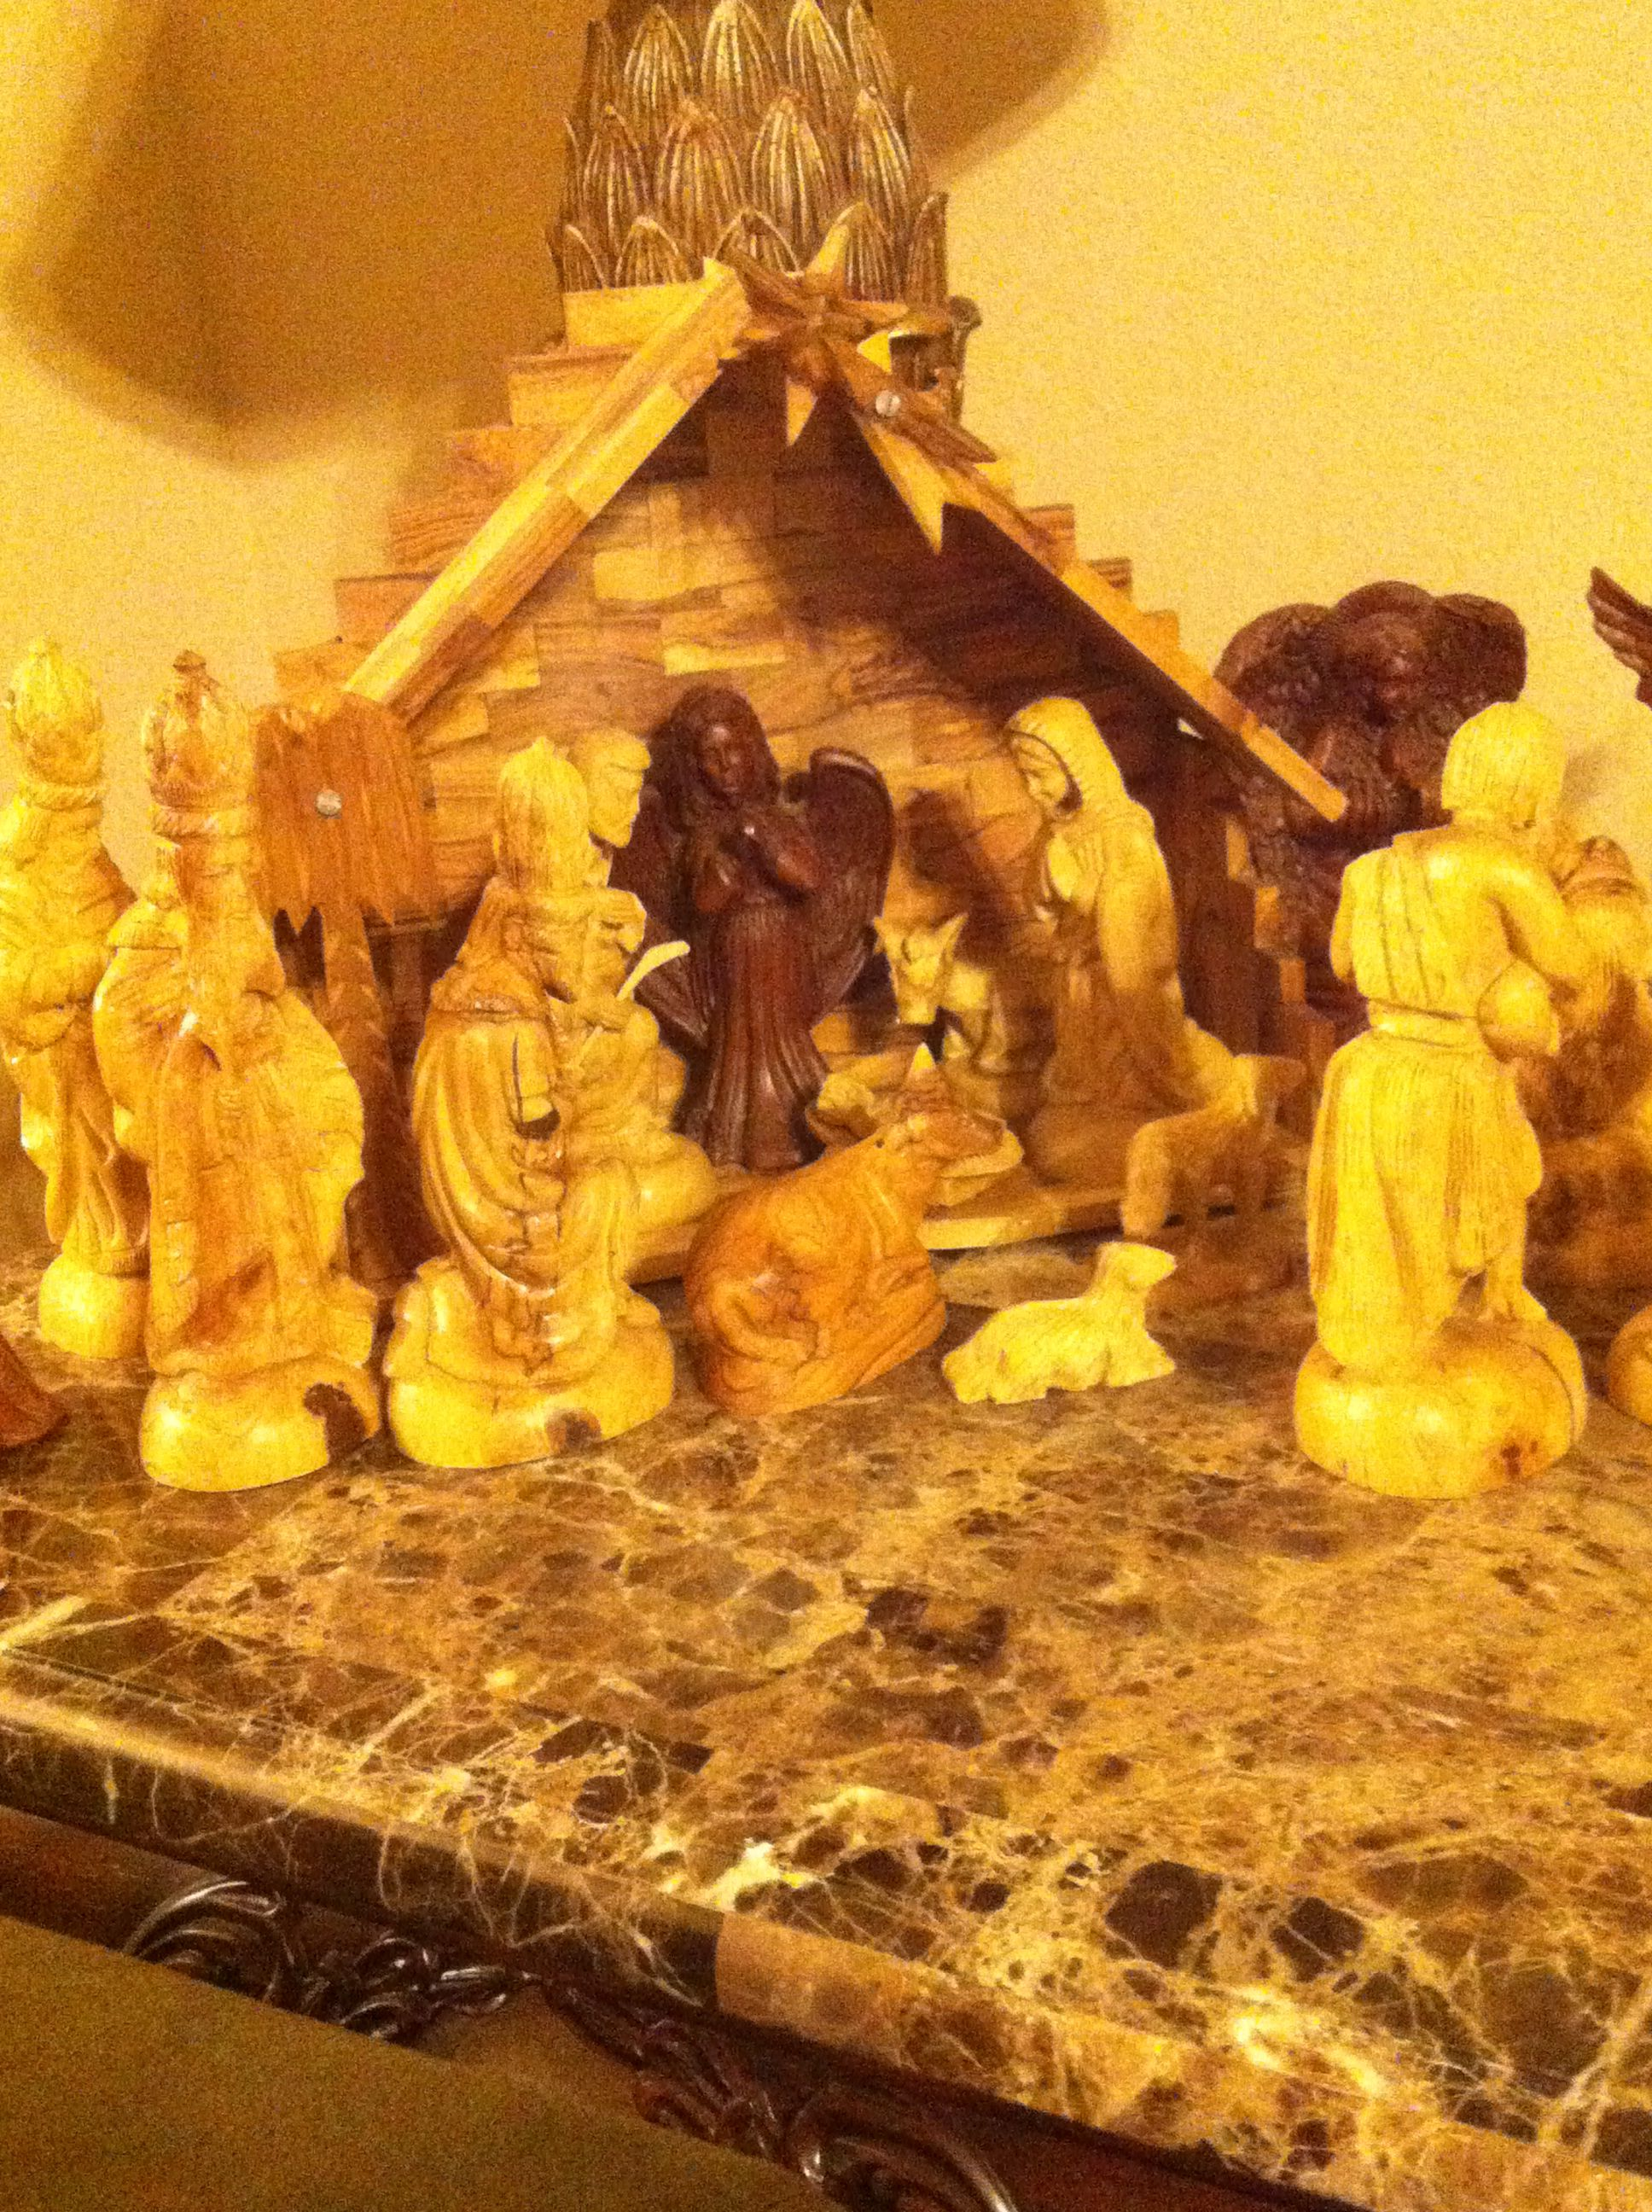 The real meaning of Christmas from an olive wood nativity